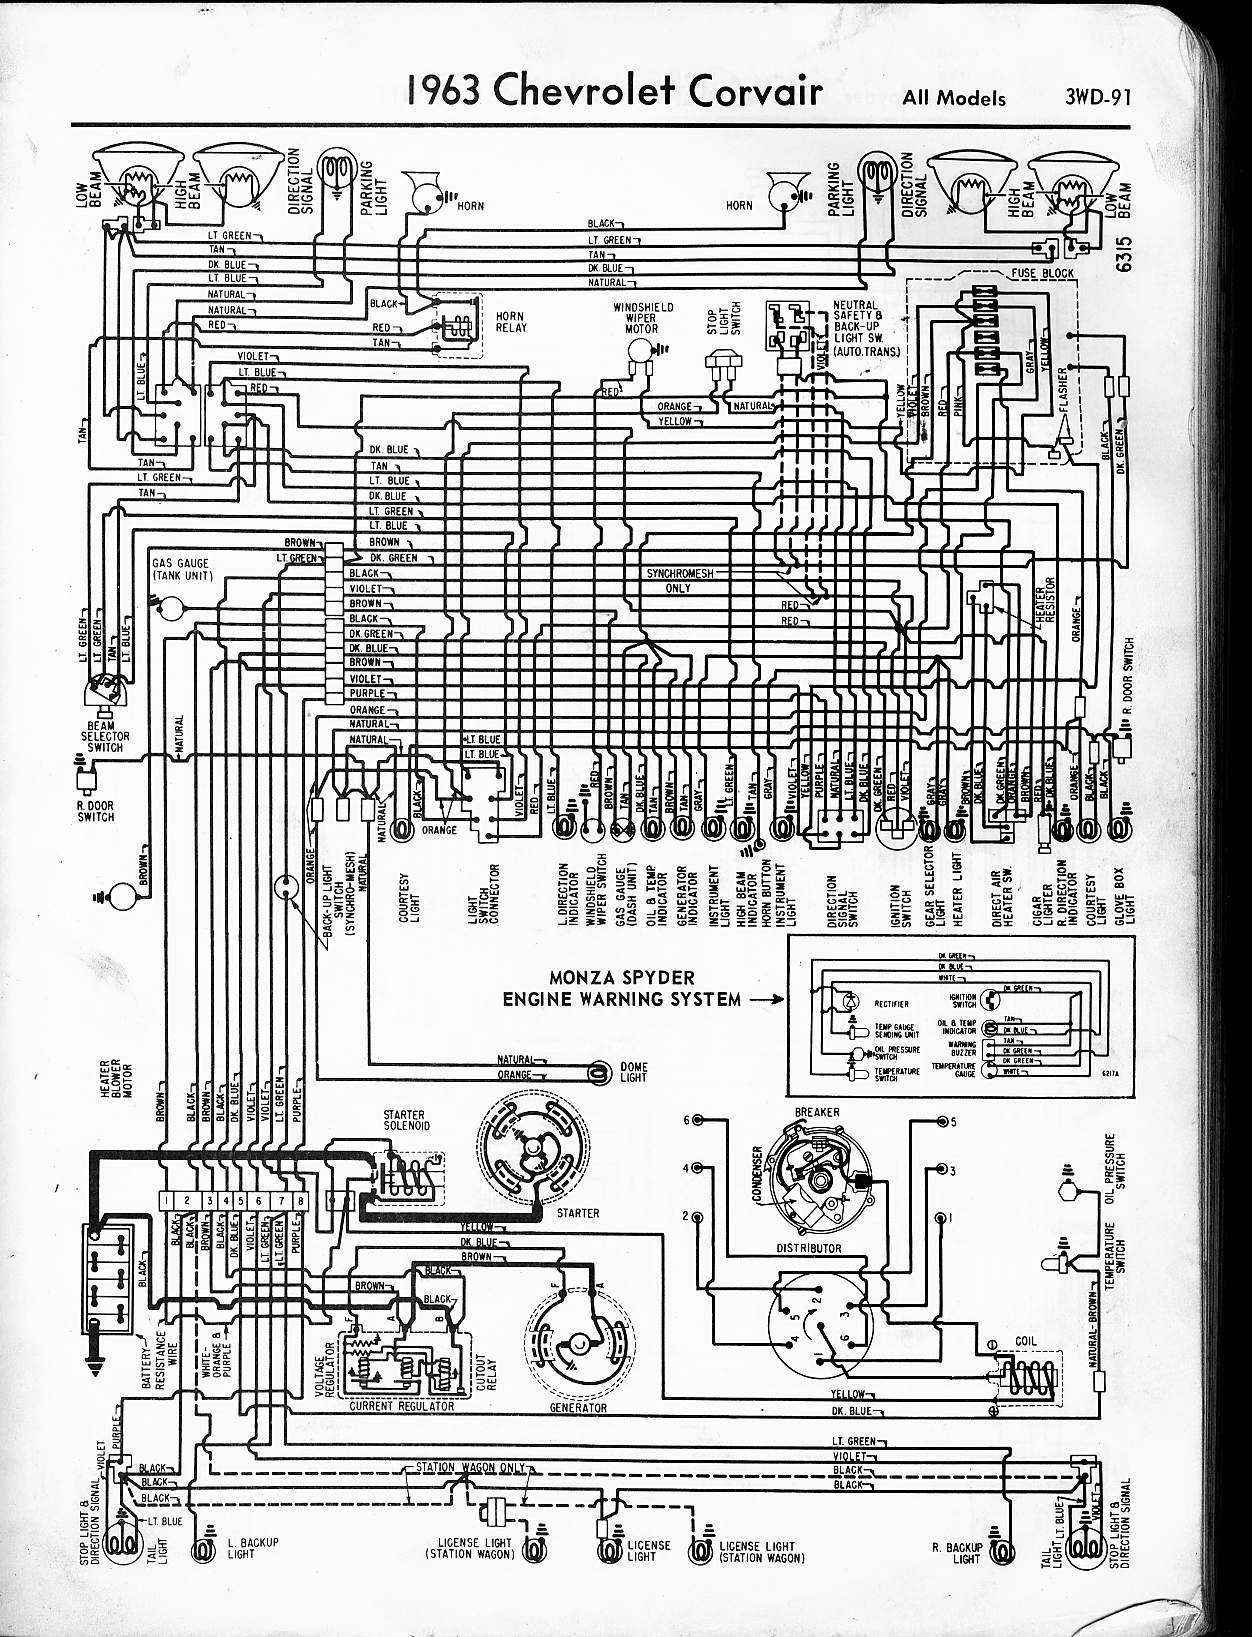 57 65 Chevy Wiring Diagrams 65 Chevy Wiring Diagram 57 Chevy Wiring Diagram